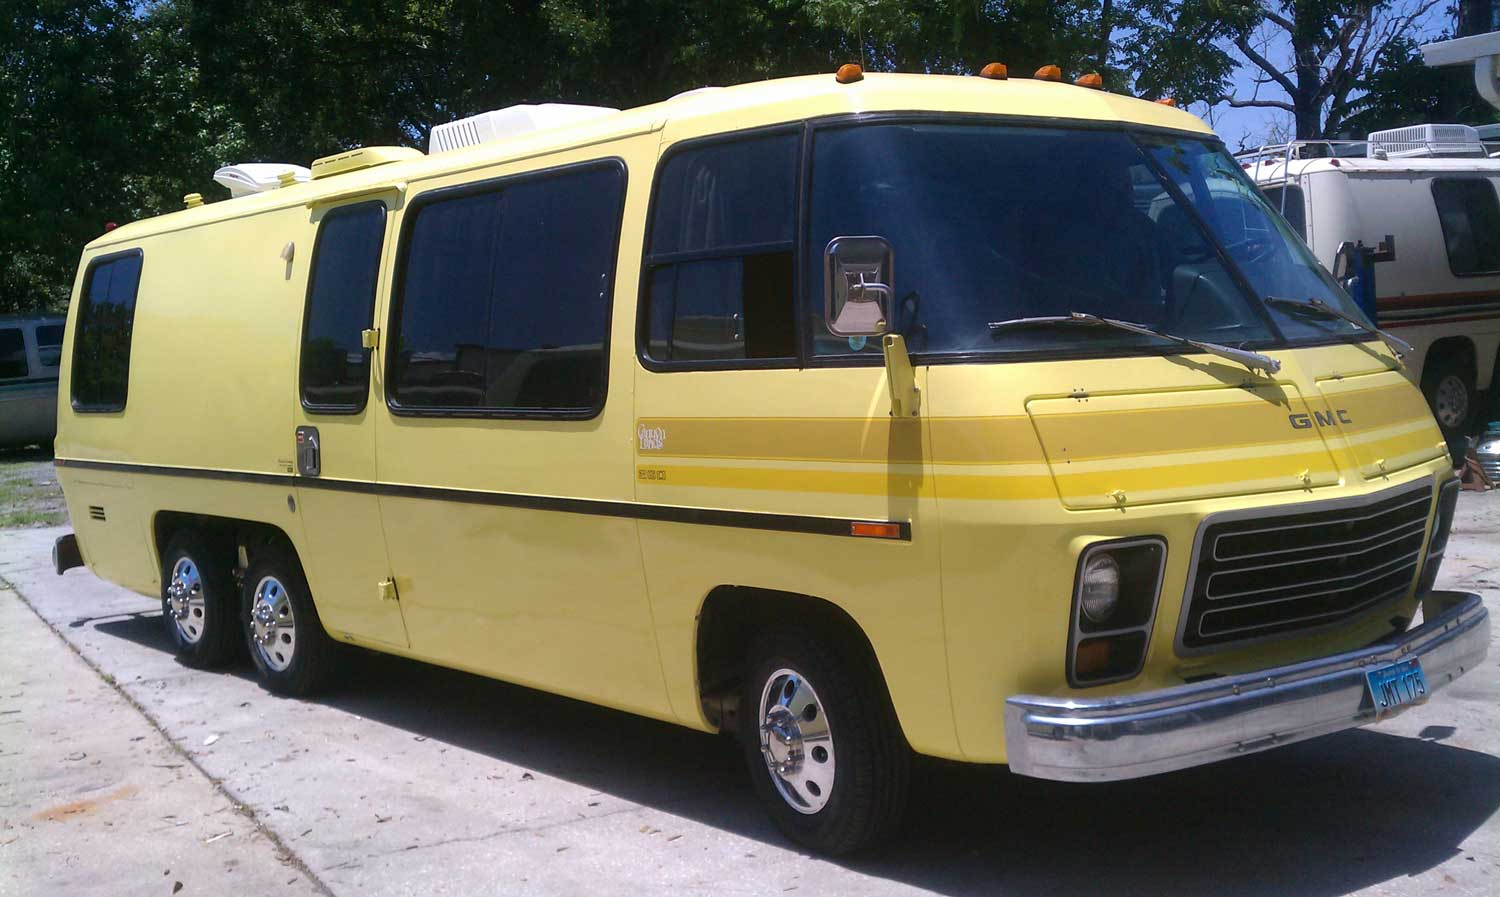 Motorcoach For Sale >> GMC Motorhome, A project many may need to do